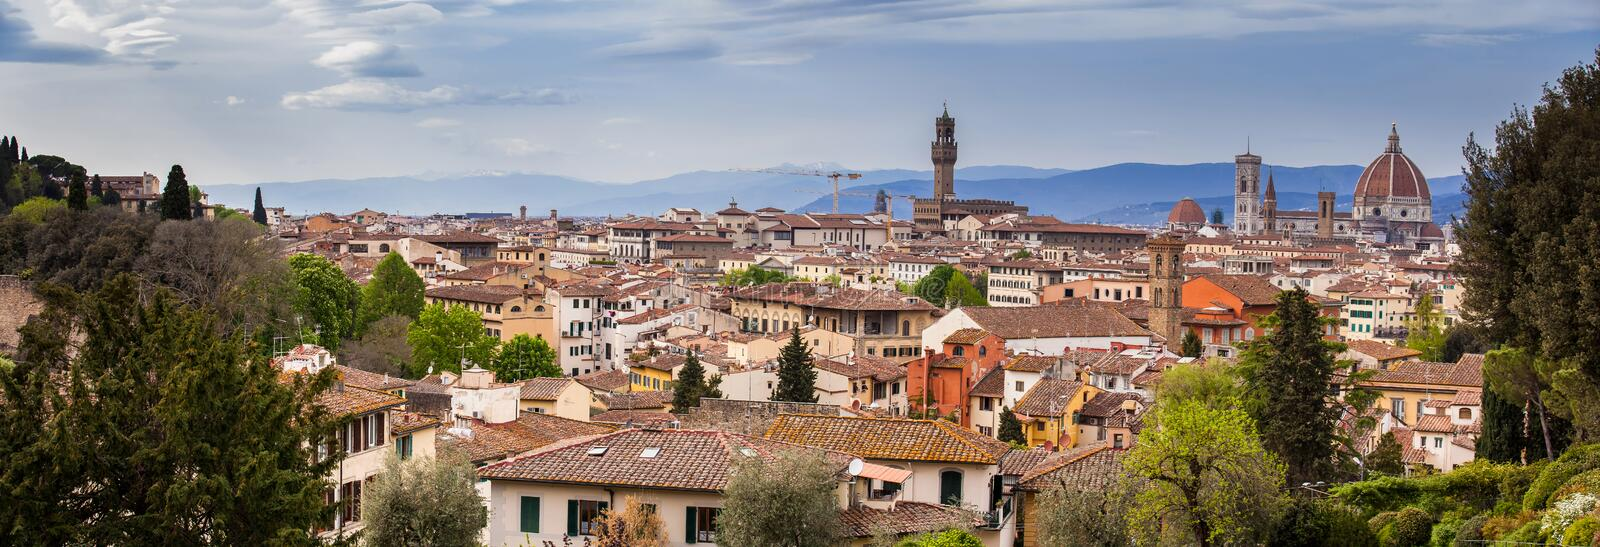 View of the beautiful city of Florence from the Giardino delle rose in an early spring day royalty free stock photos